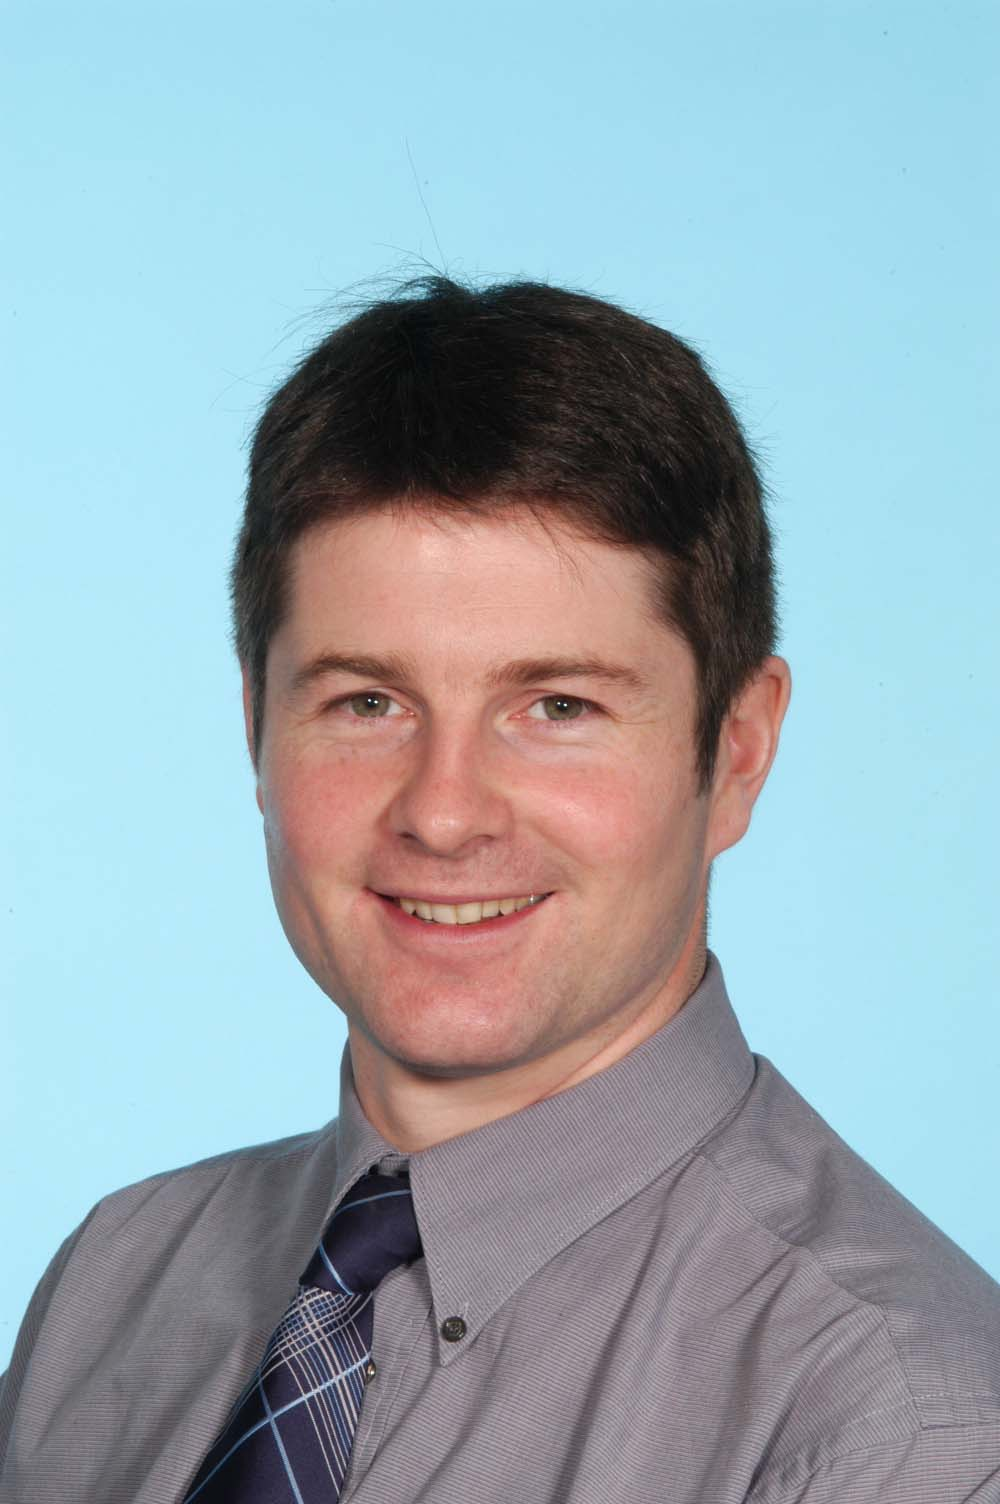 Dr Andrew Affleck - Dermatologist - Dr Affleck graduated from the University of Glasgow in 1997, BSC (Hons), MB ChB, and having trained in the West of Scotland and then Nottingham was appointed as a Consultant at Ninewells Hospital & Medical School, Dundee in 2008 after a 1-year fellowship in Mohs Micrographic Surgery. His main clinical and research interests are skin cancer diagnosis and treatment, dermatological surgery, male genital skin disorders and psychodermatology. He is the clinical lead for skin cancer in the North of Scotland Cancer Network.To book an appointment with Dr Affleck please call 01382 549088 or contact us.